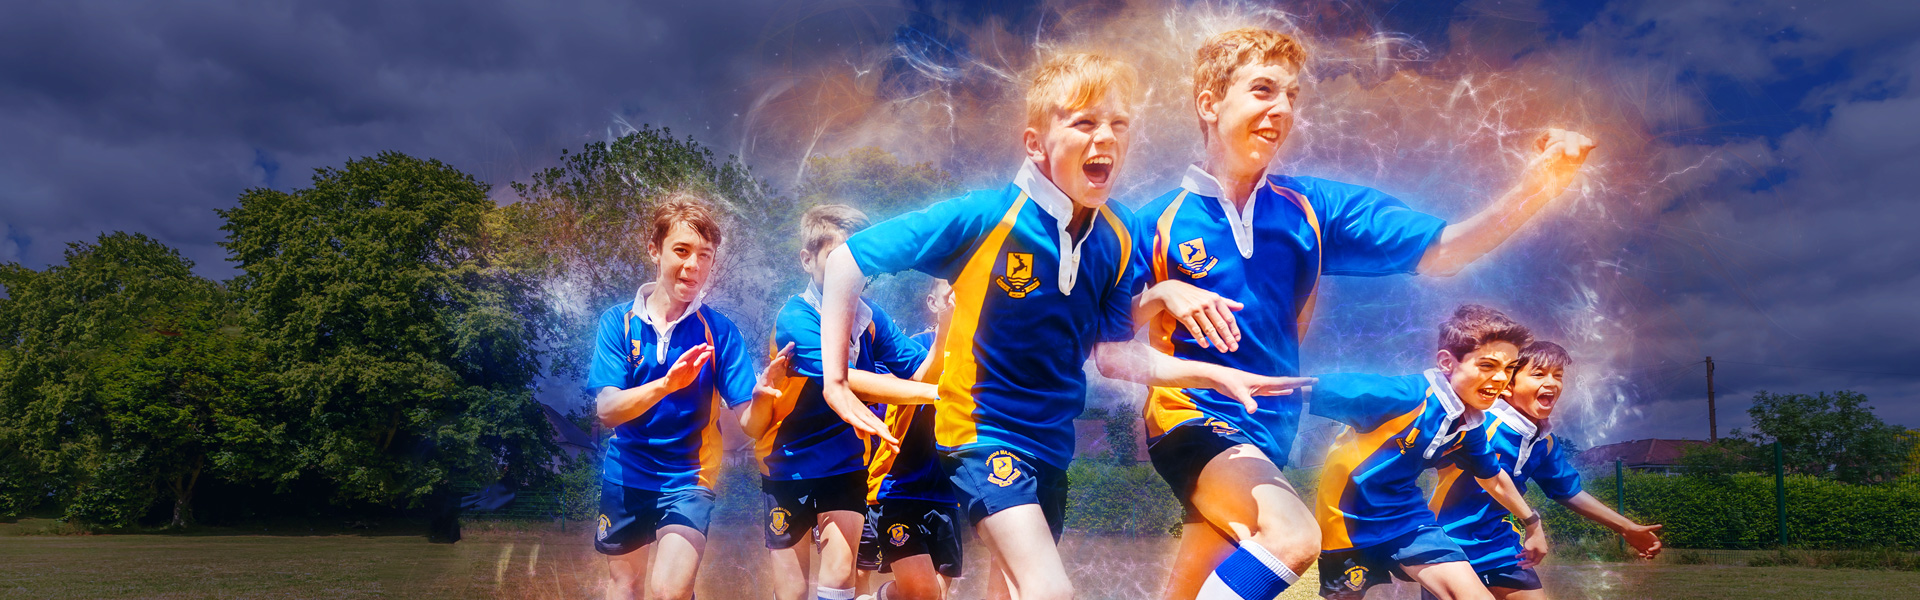 stylised photograph of sporting students running cheering towards camera